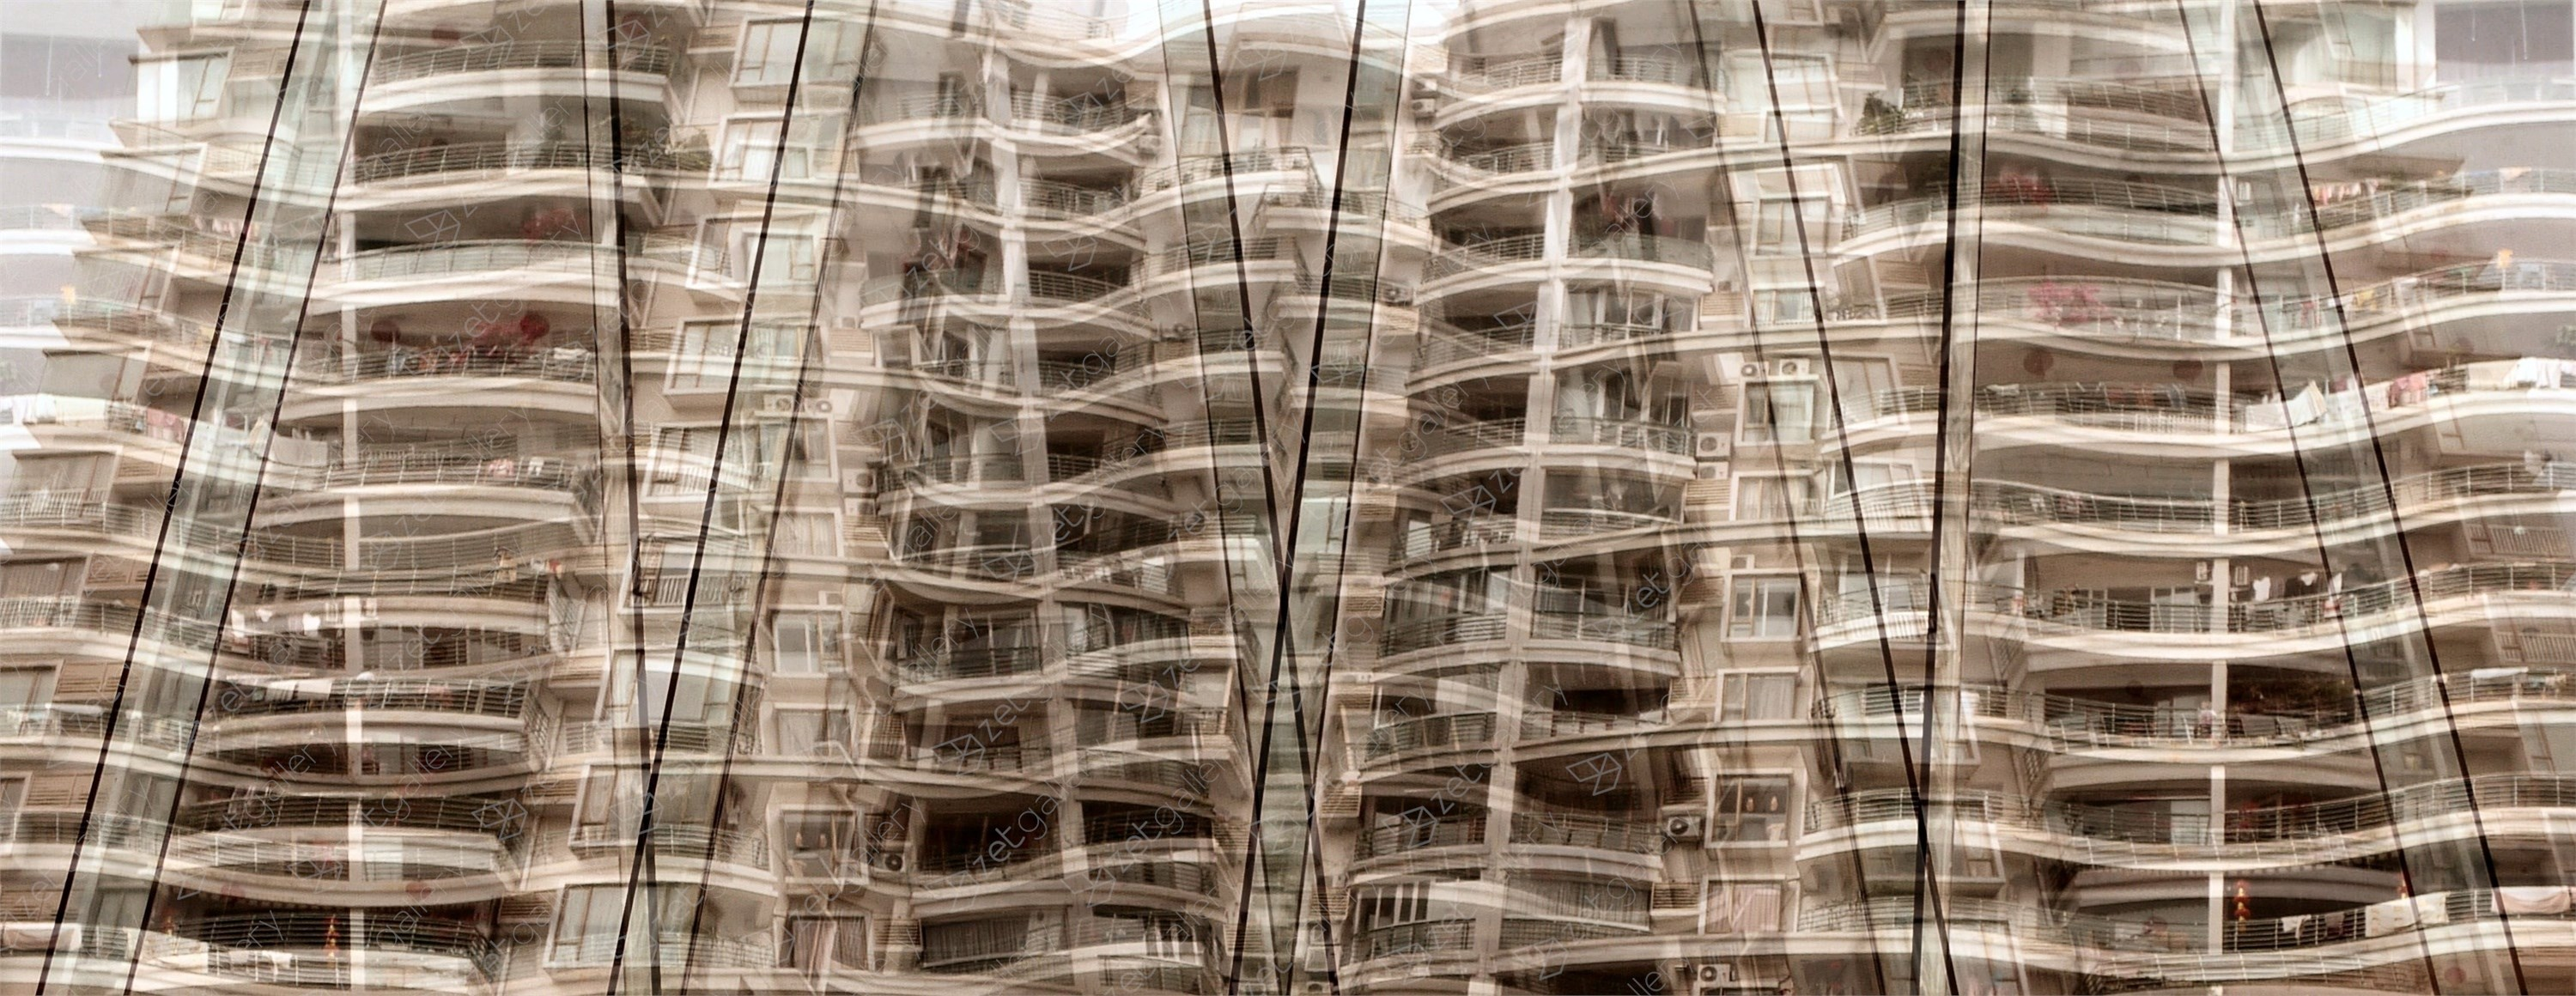 Shenzhen 3, original Architecture Digital Photography by John Brooks